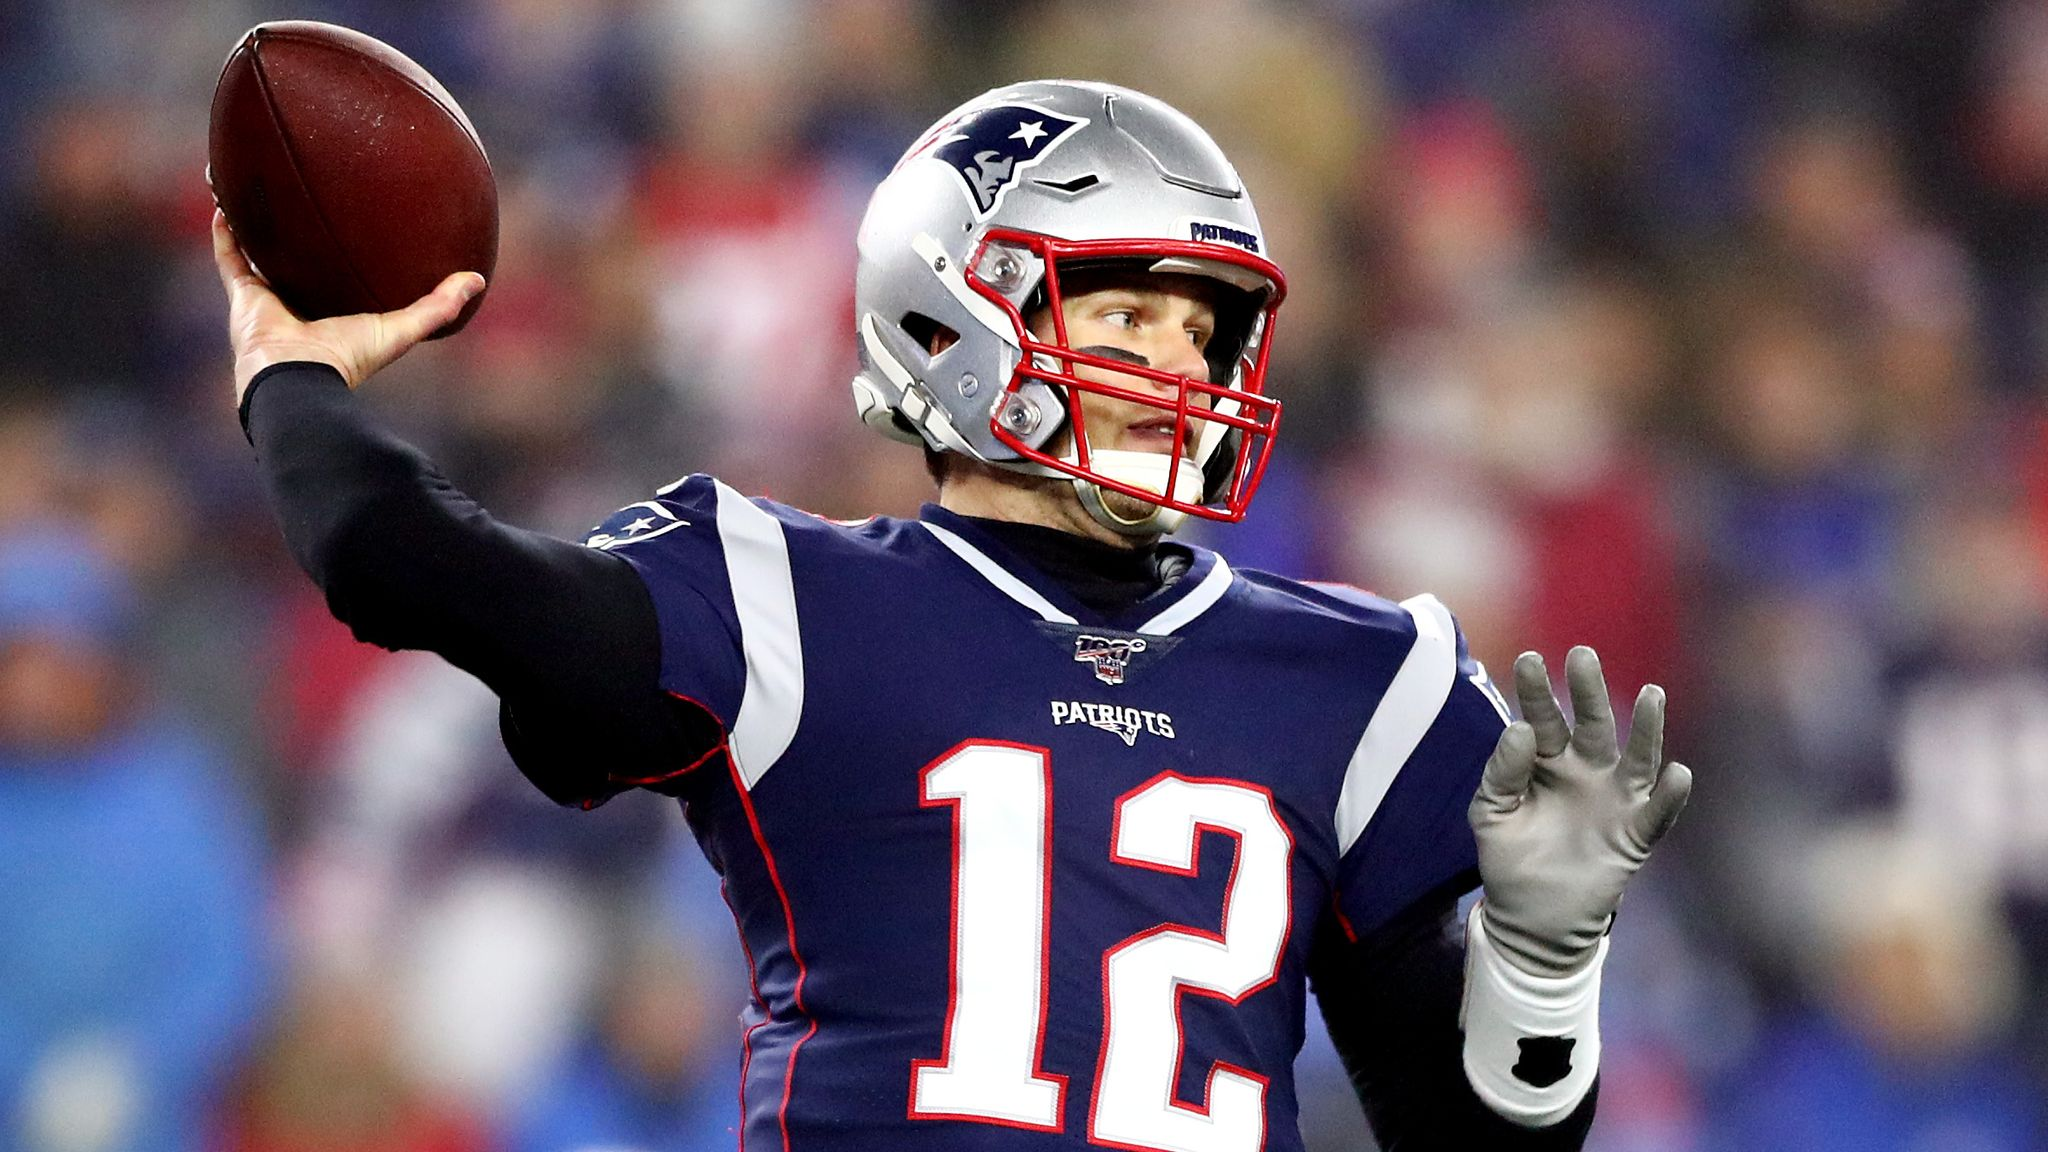 tom brady pitched himself to tampa bay buccaneers says general manager jason licht nfl news sky sports tom brady pitched himself to tampa